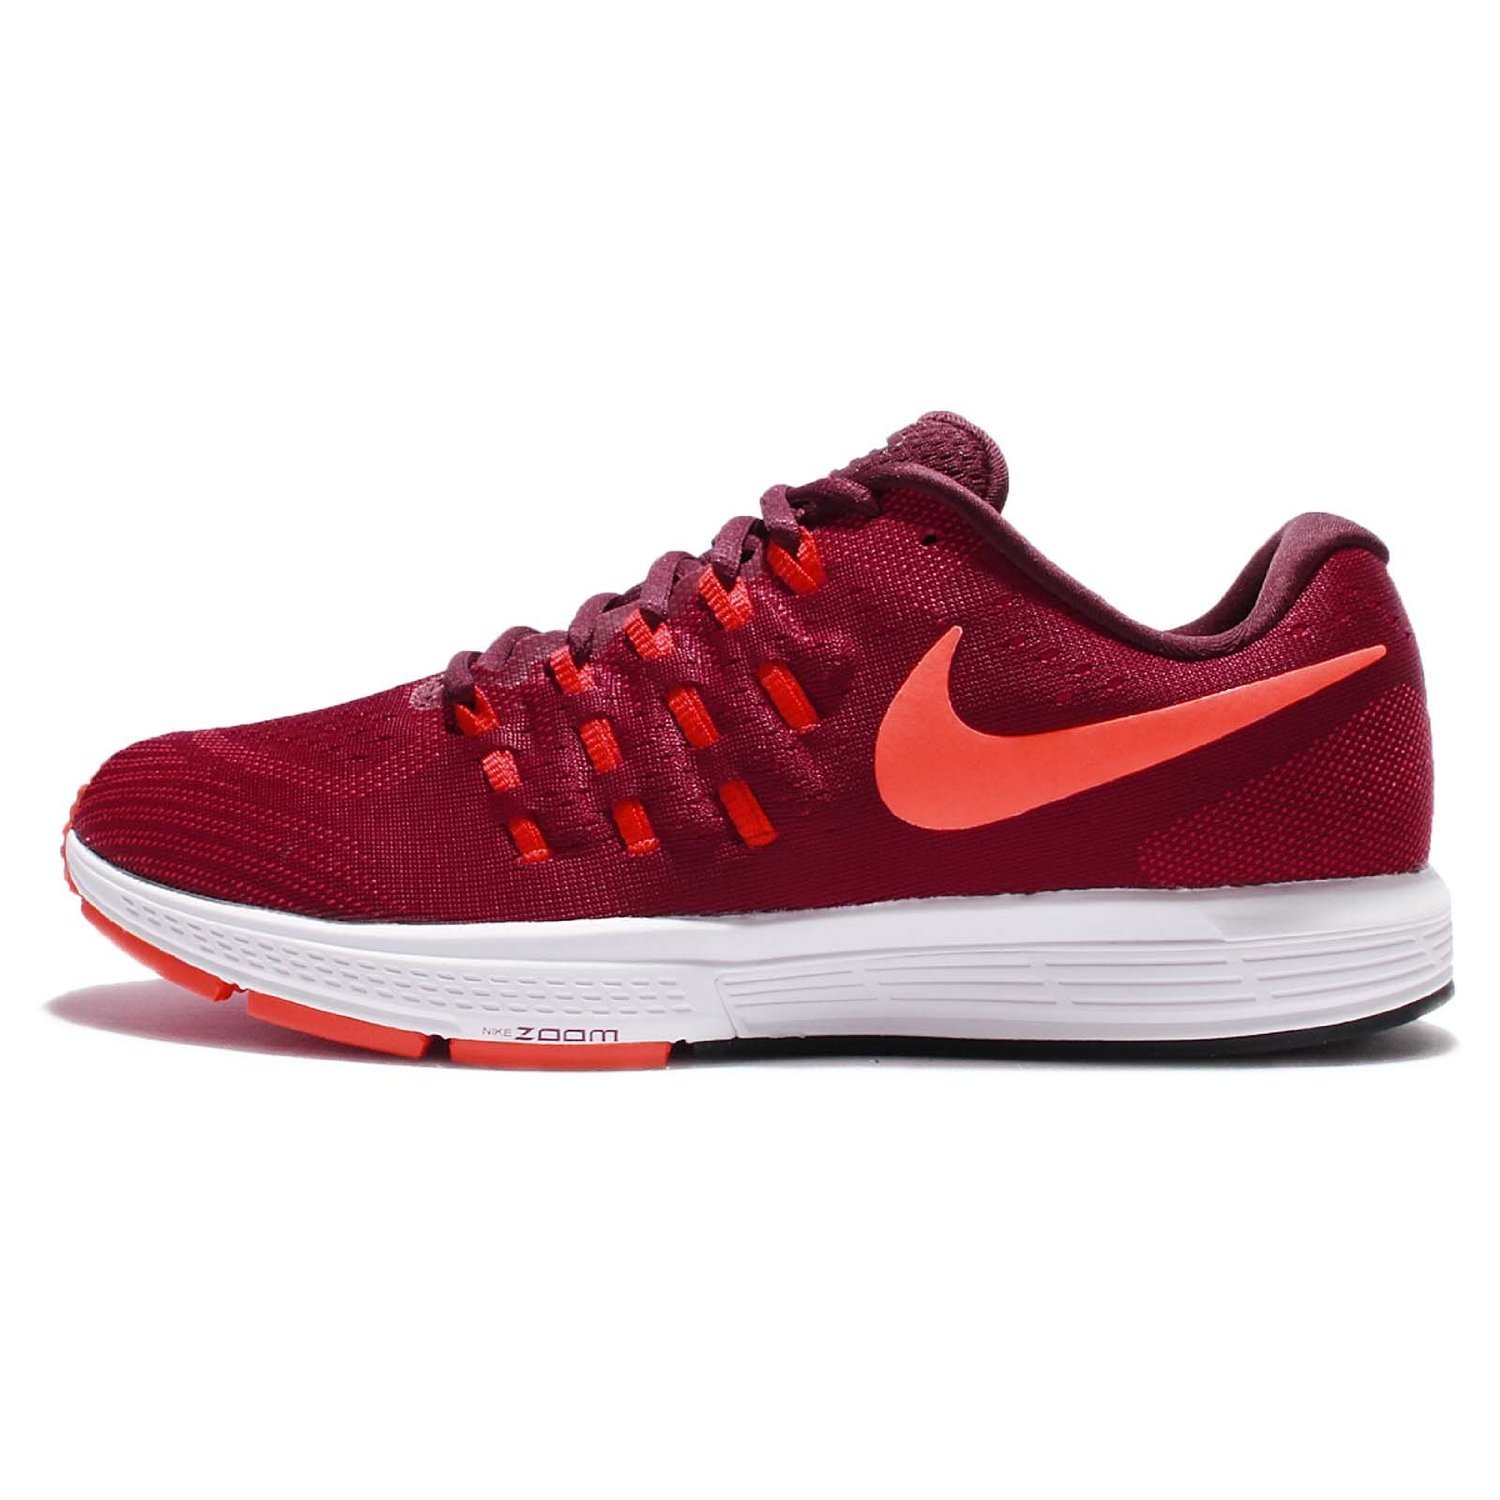 separation shoes 0cc10 ac7d2 Galleon - Nike Men s Air Zoom Vomero 11 Running Shoe (11.5 D(M) US, Night  Maroon White Ttl Crimson)